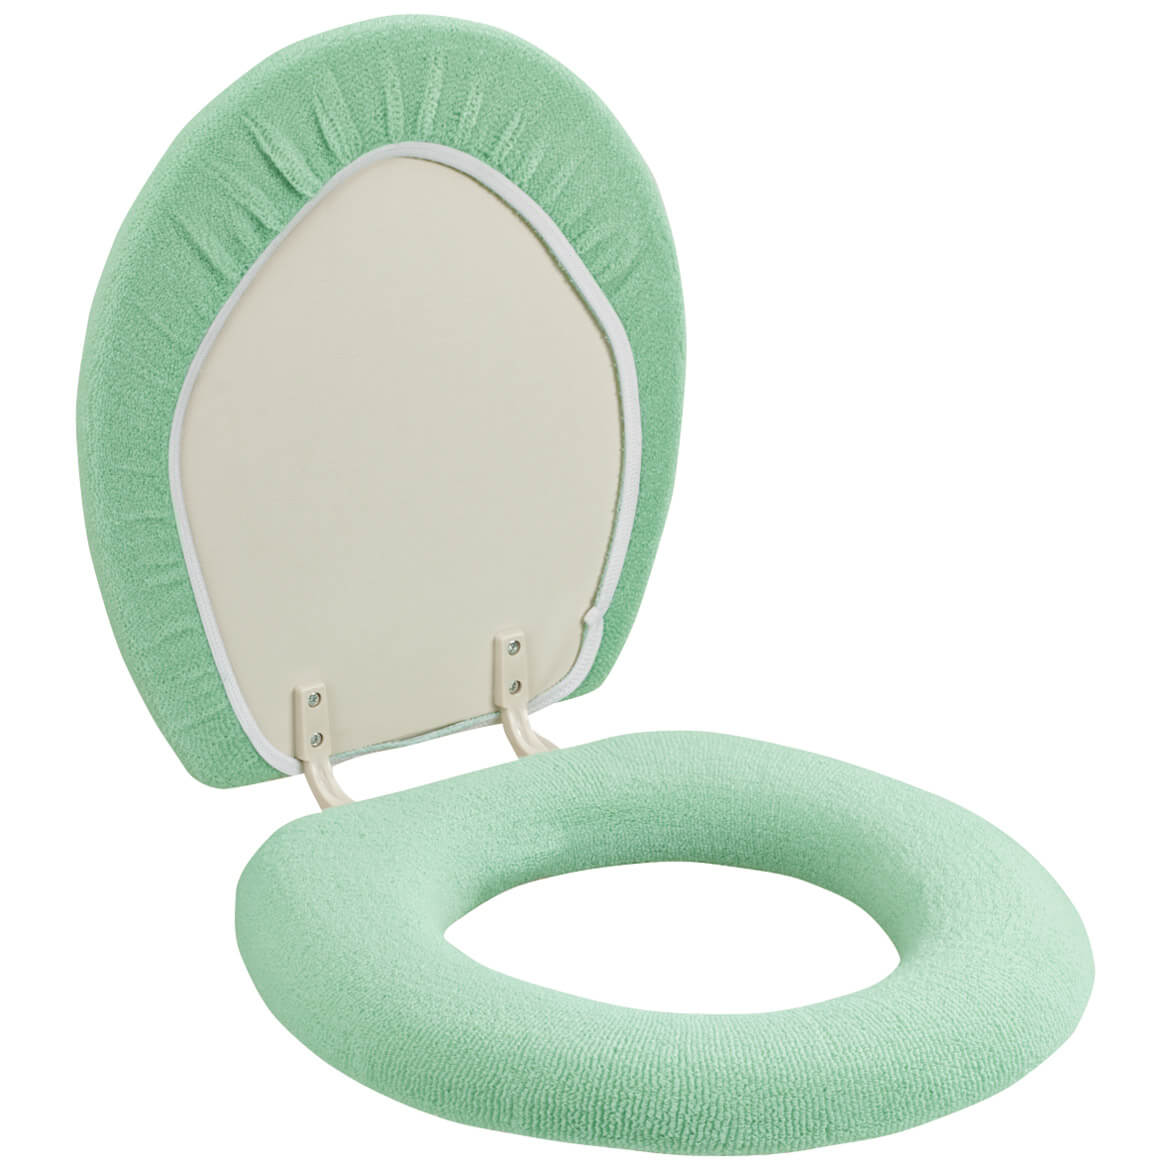 cushioned toilet seat covers. Toilet Seat Cover 303457 Sherpa  Cushioned Miles Kimball